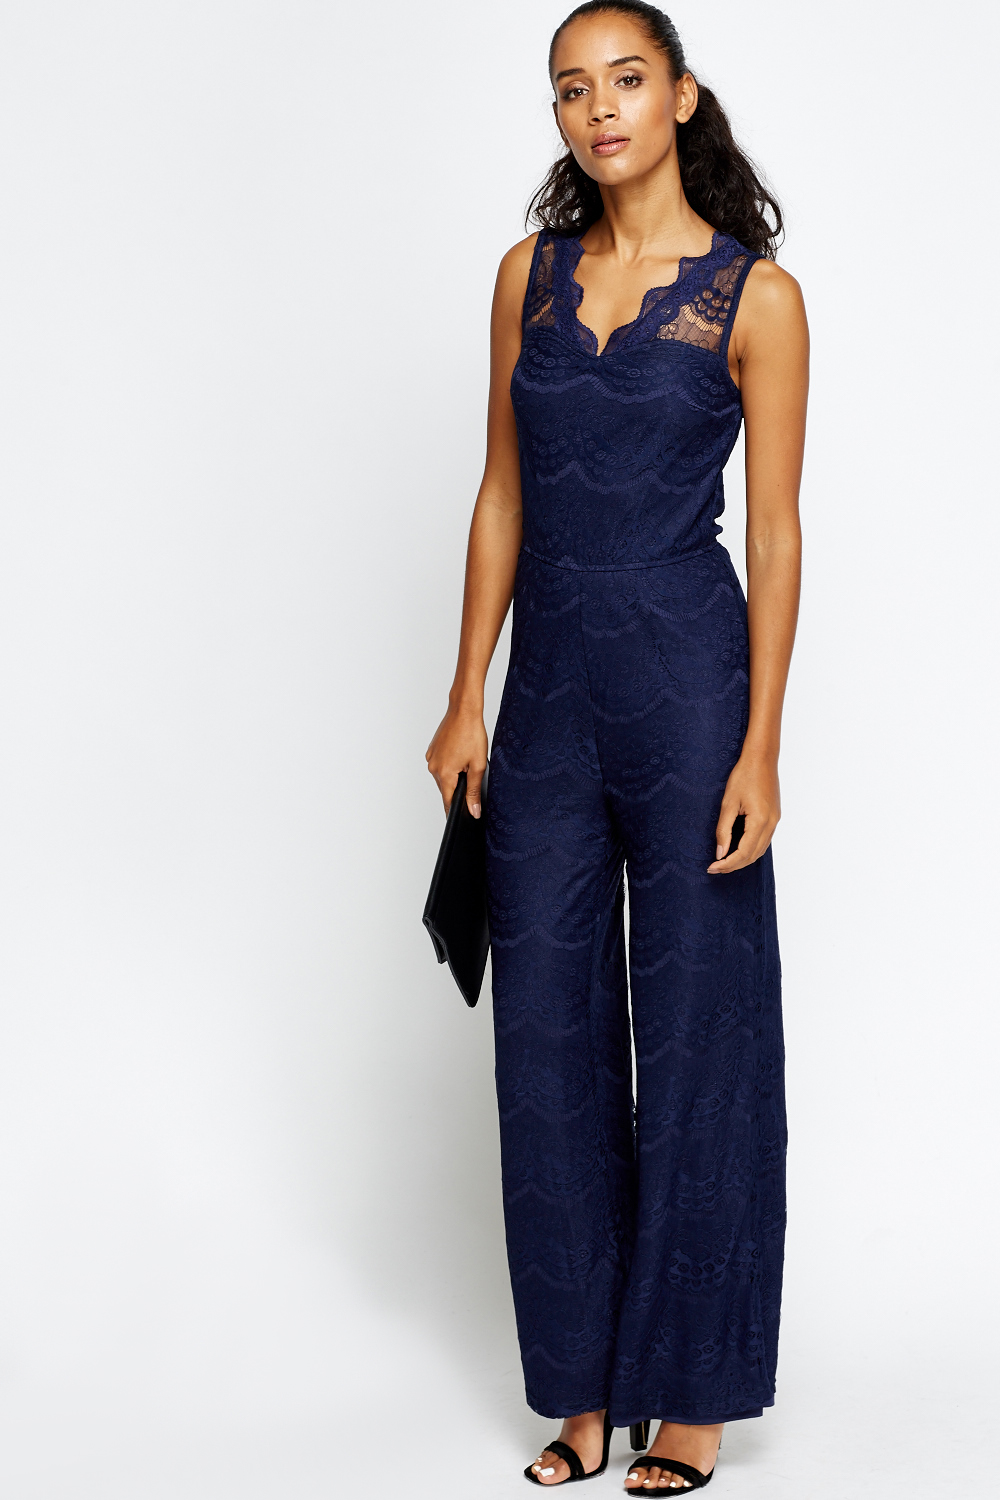 Sweetheart Lace Overlay Navy Jumpsuit - Just £5